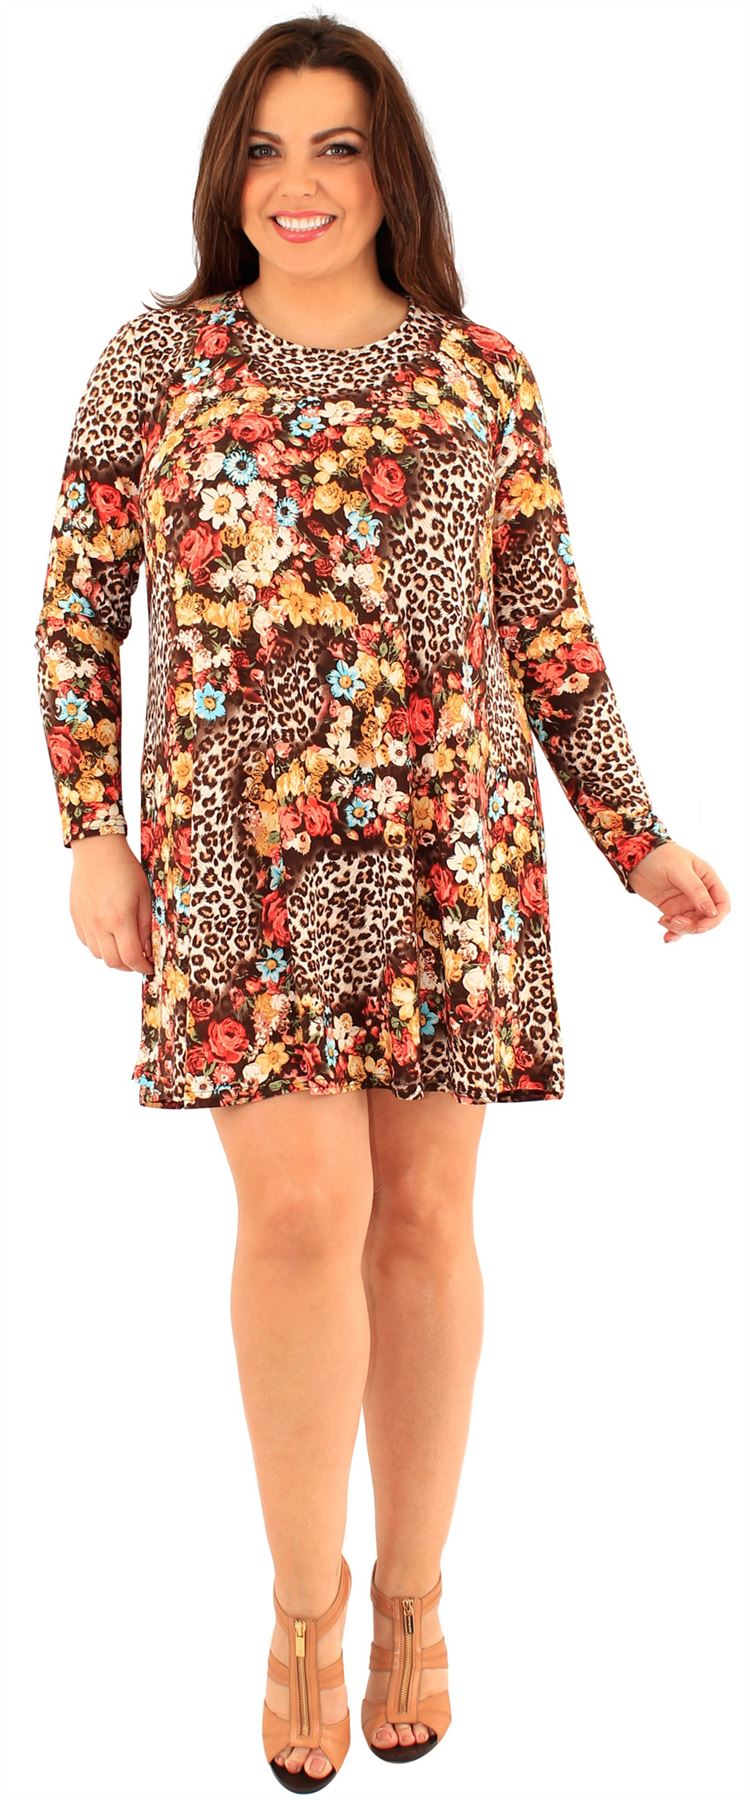 Ladies Curve Summer Floral Blossom Prints Soft Fabric Long